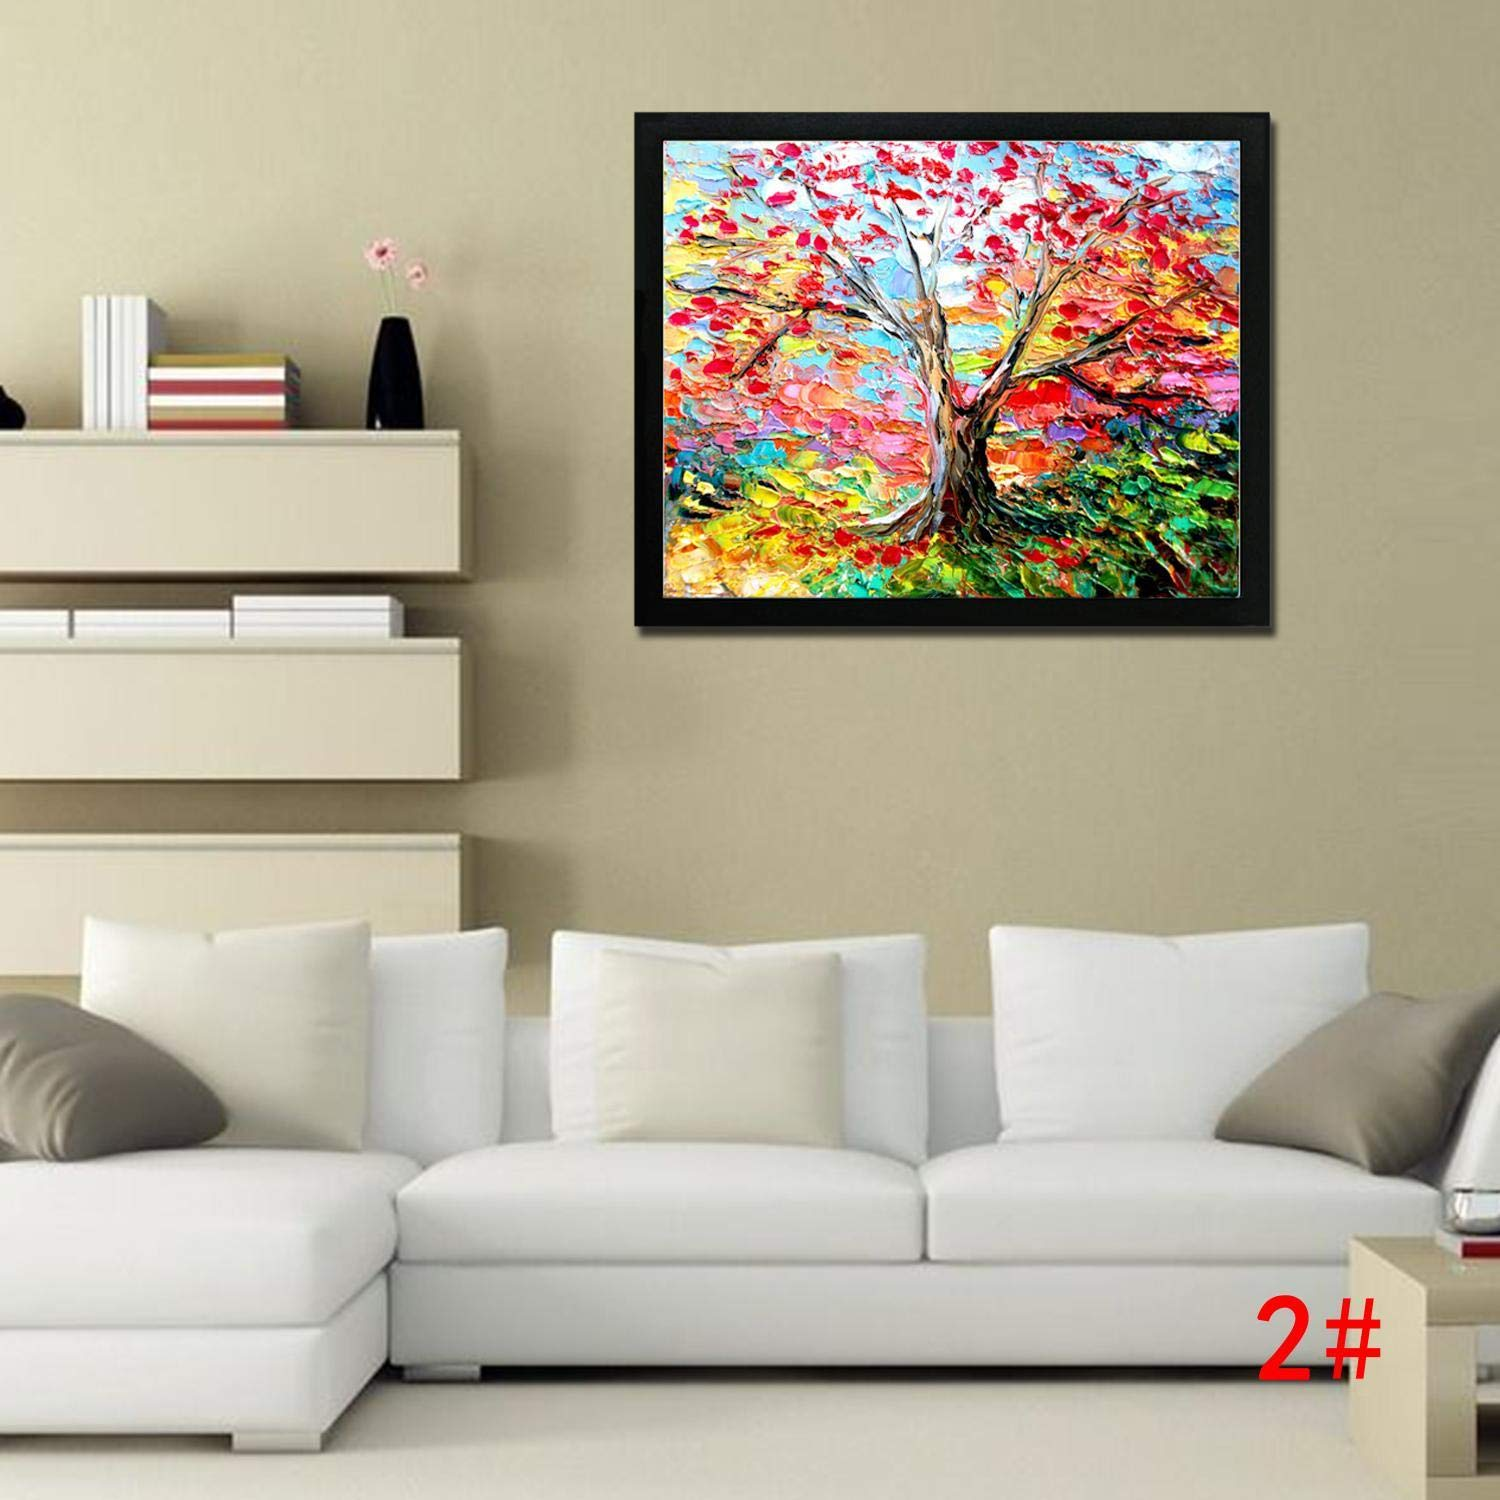 Bifast Wall Art Oil Painting for Home Frameless Colorful Painting Sailboat, Tree, Castle, Forest Path